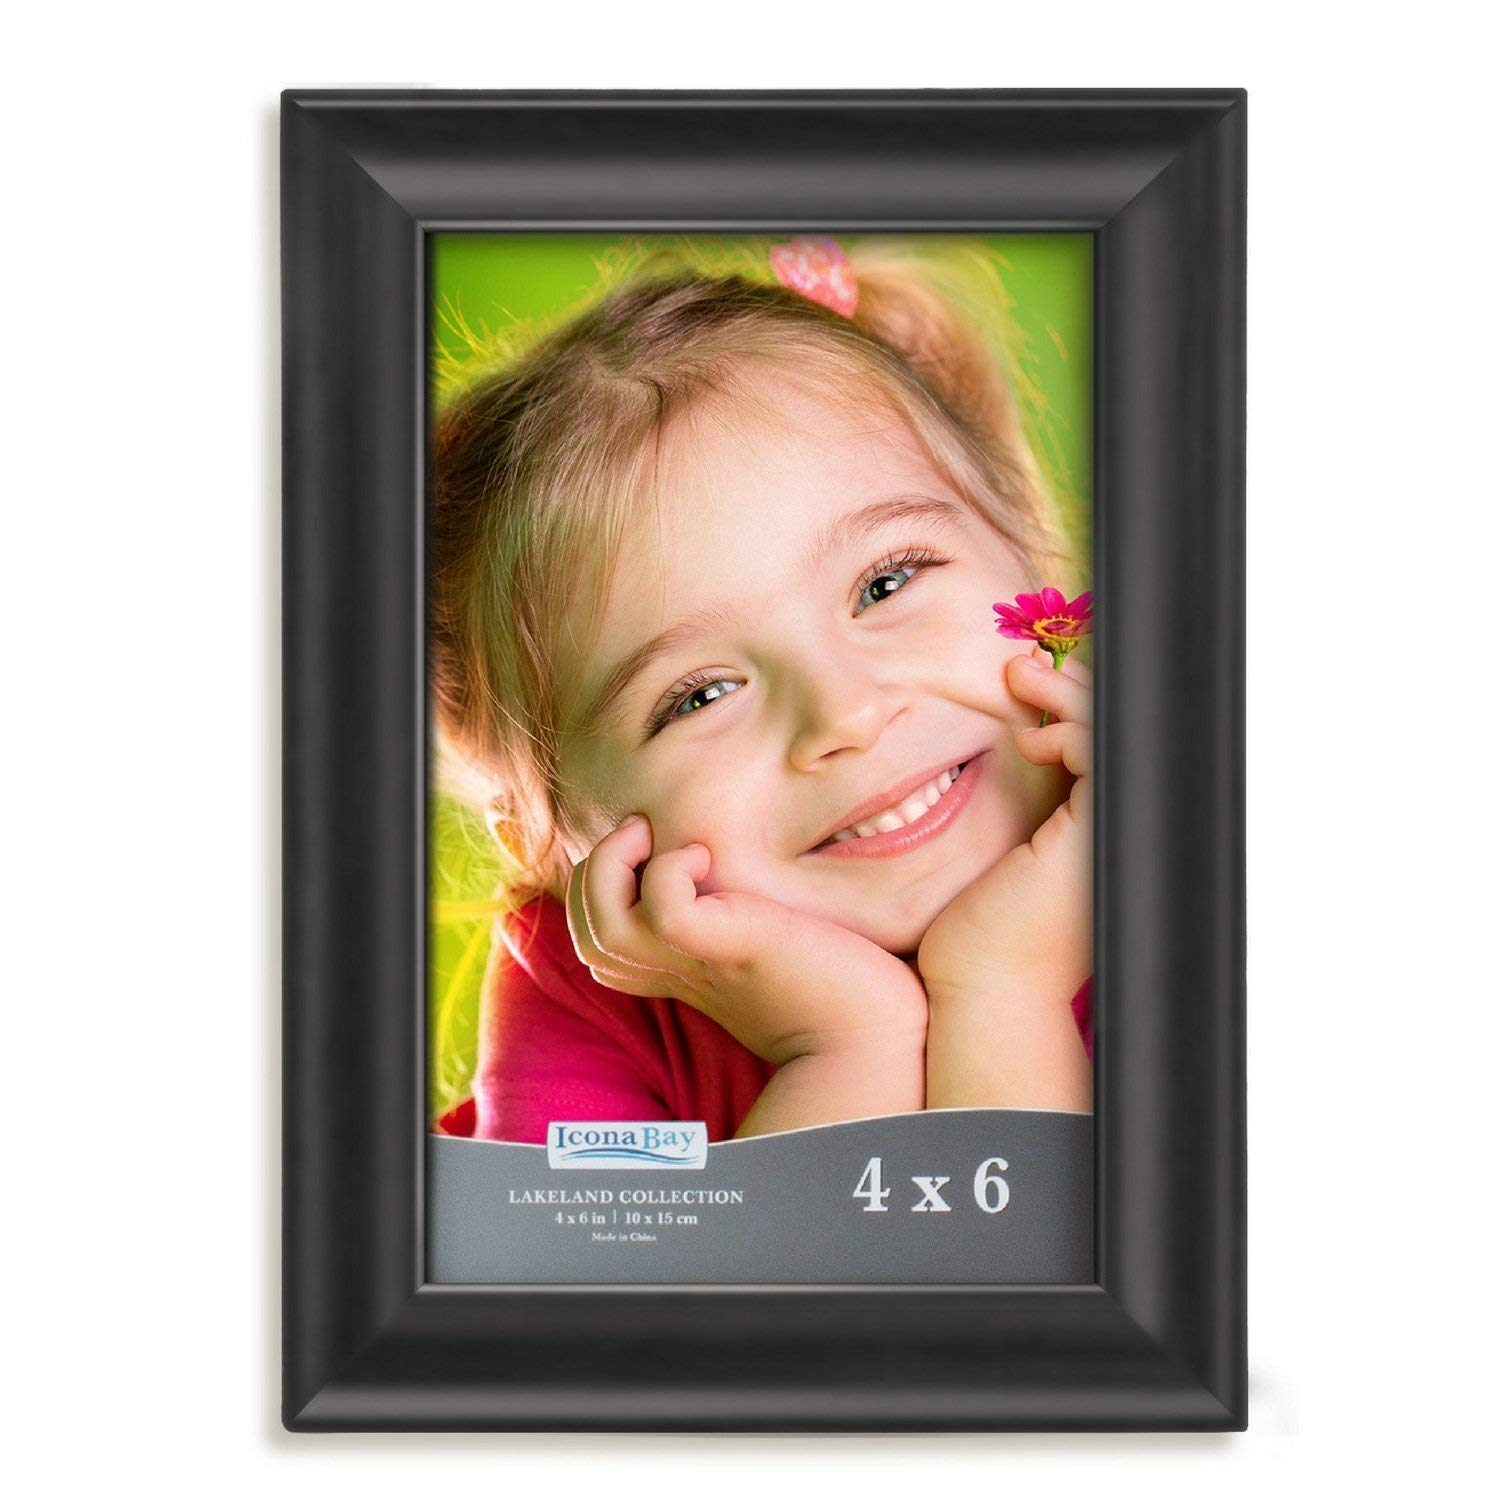 Icona Bay 4x6 Picture Frame (1 Pack, Black Wood Finish), Photo Frames for Wall or Table, Photo Frame 4x6, Black Picture Frames 4 x 6, Black Photo Frames 4x6, Wood Frame, Lakeland Collection